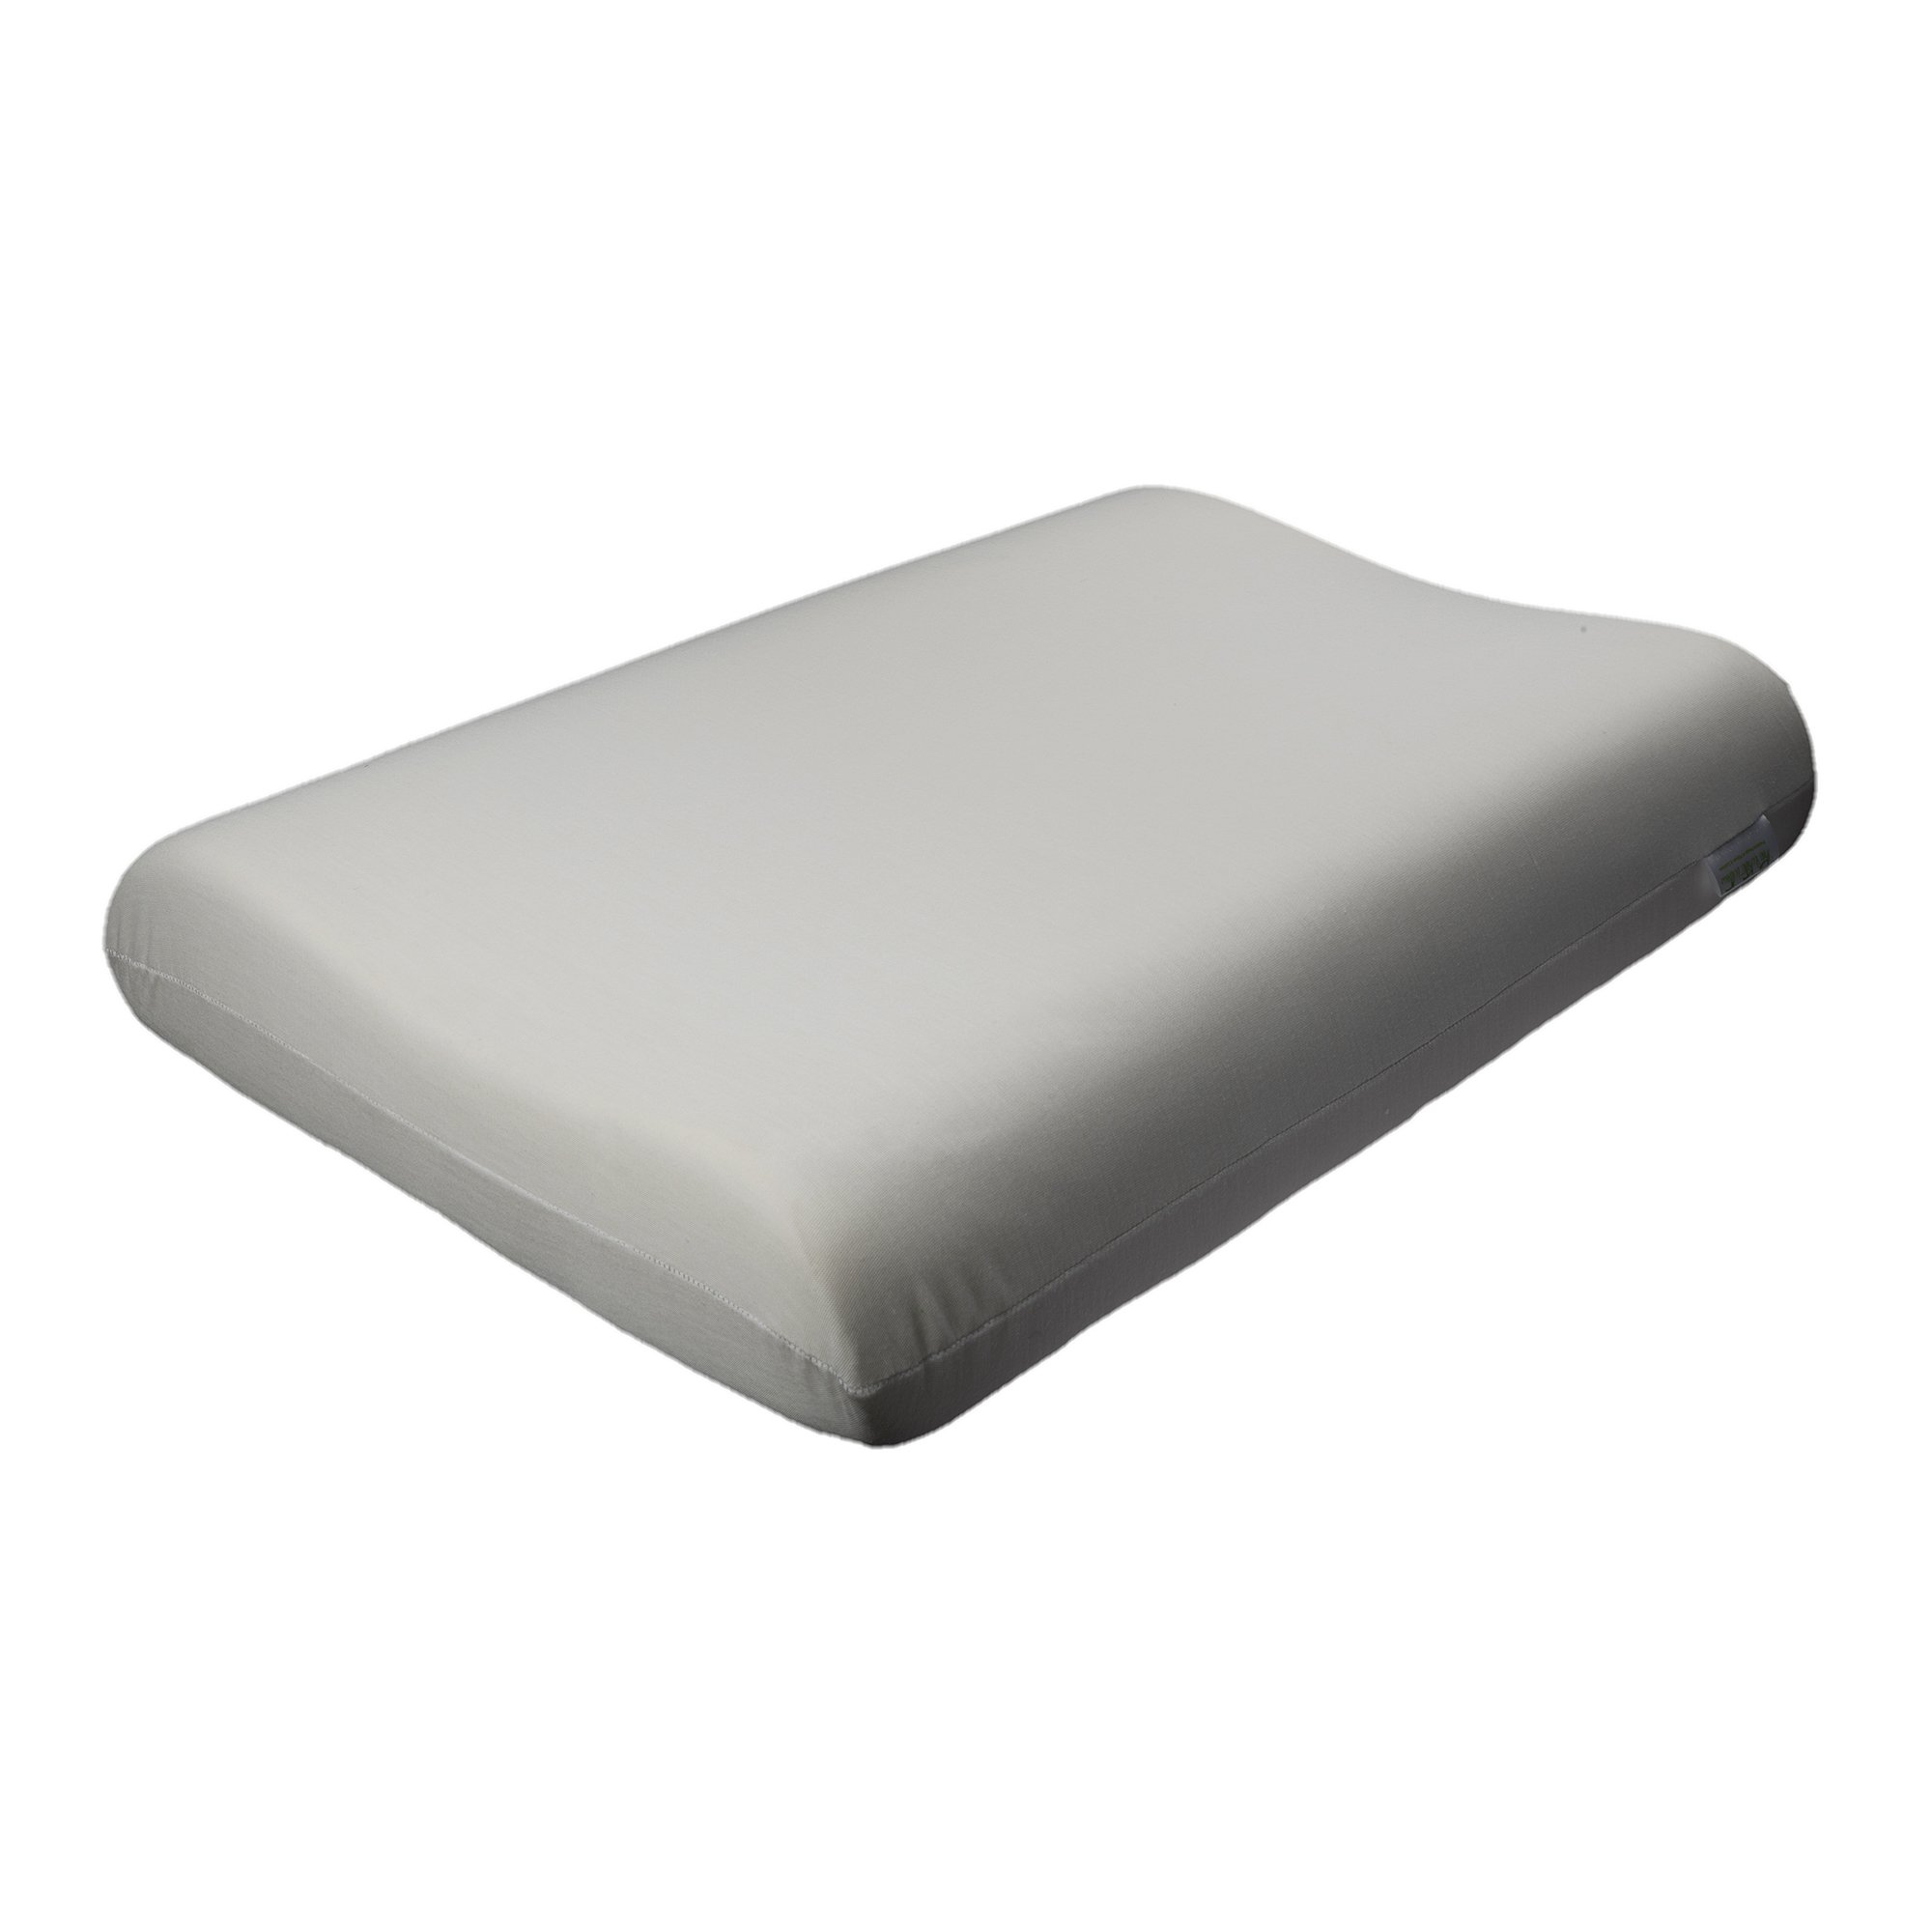 The White Willow Contour Visco Memory Foam Cushion For Neck Pain Relief Light Weight Cervical Support Orthopedic Bed Pillow For Sleeping Side or Back 20'' x 12'' x 4'' White (3), Free Express Shipping by The White Willow (Image #1)